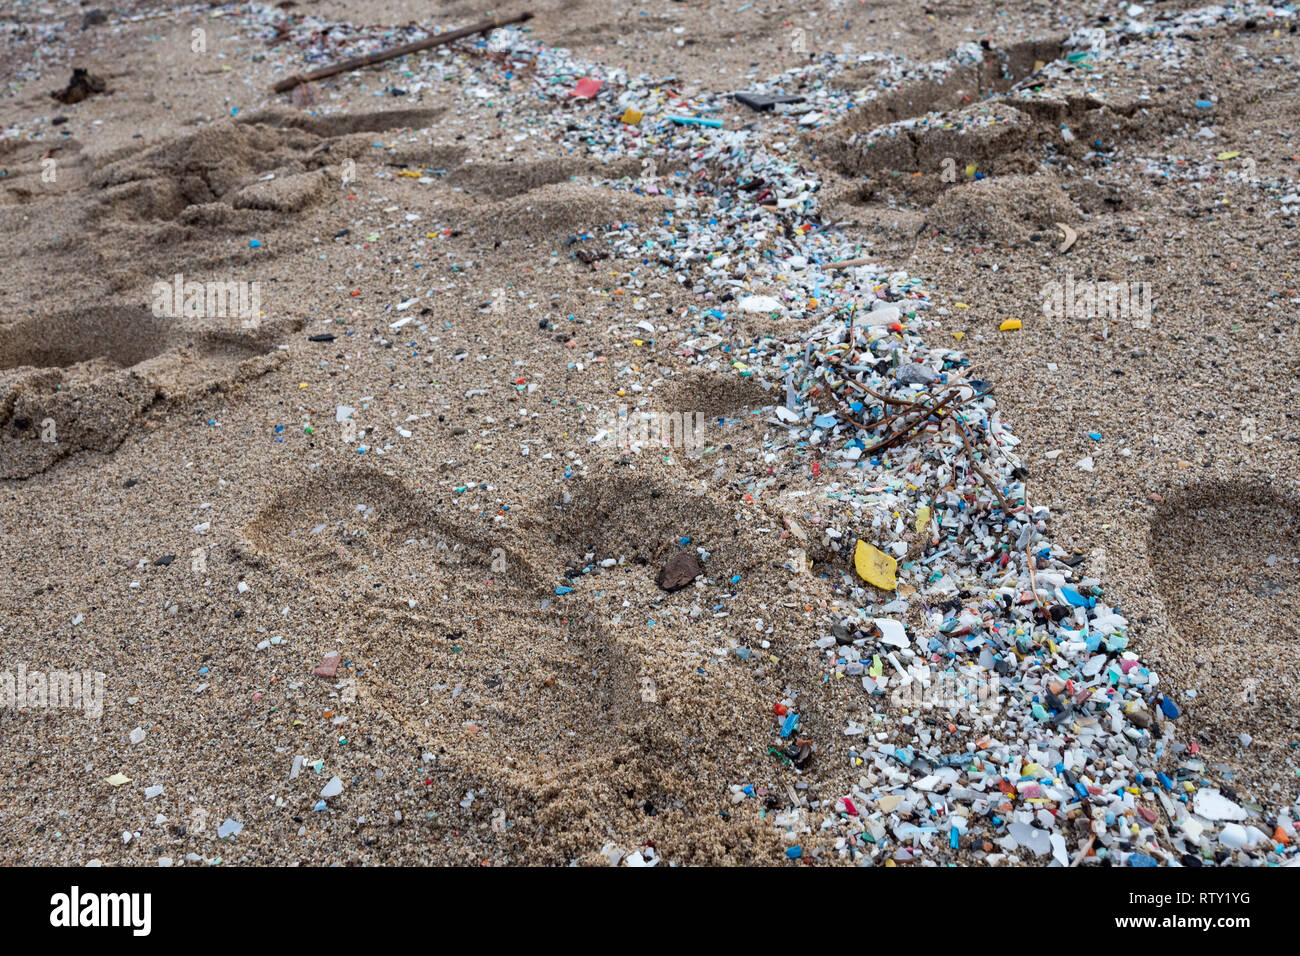 Corigliano Rossano, Italy, 02 March, 2019 -  Microplastics along the Schiavonea beach, transported by the Ionian sea during the last sea storm. The fo Stock Photo